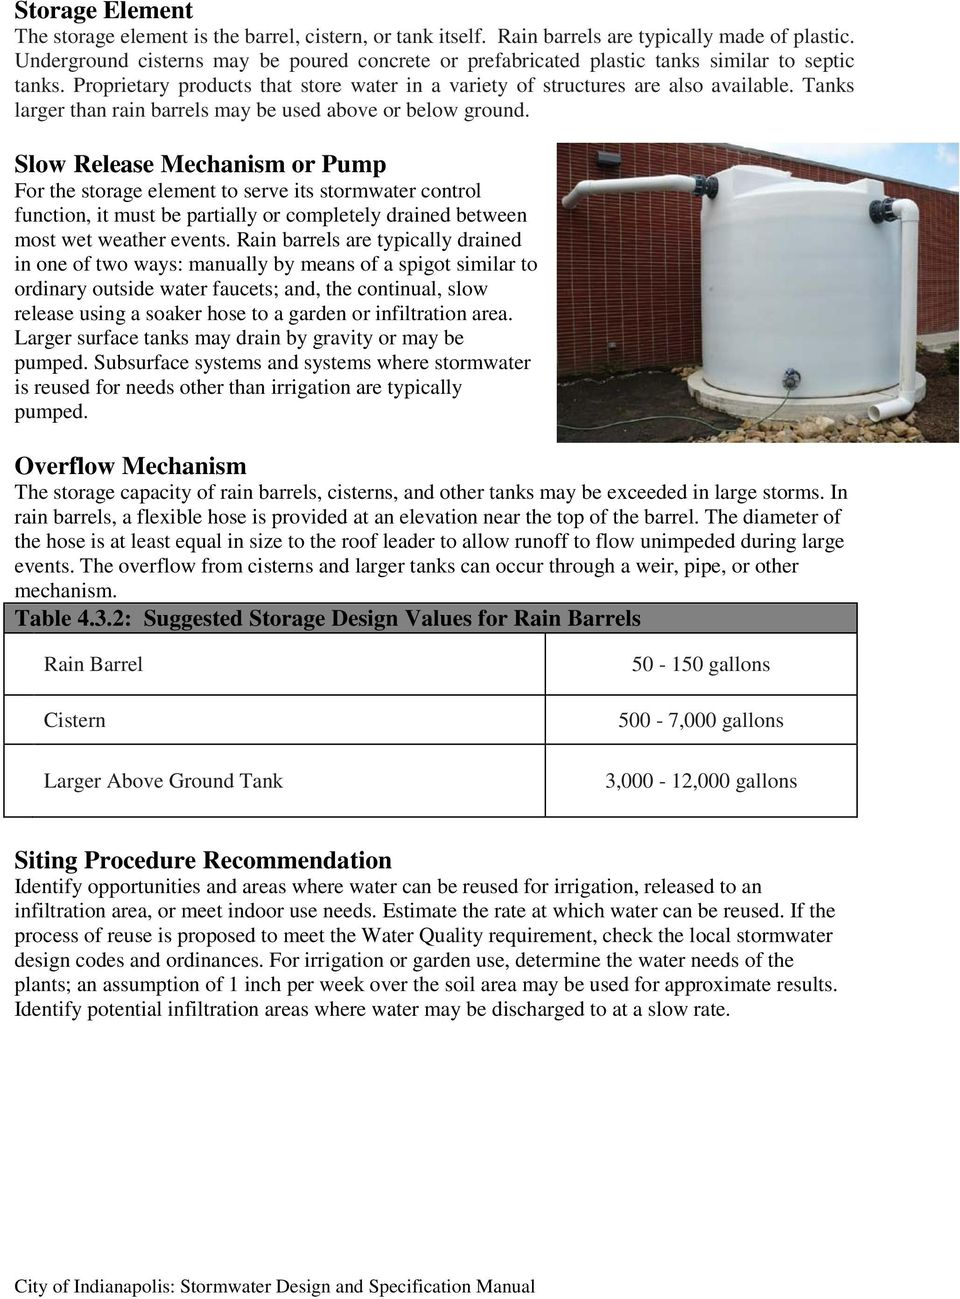 Tanks larger than rain barrels may be used above or below ground.